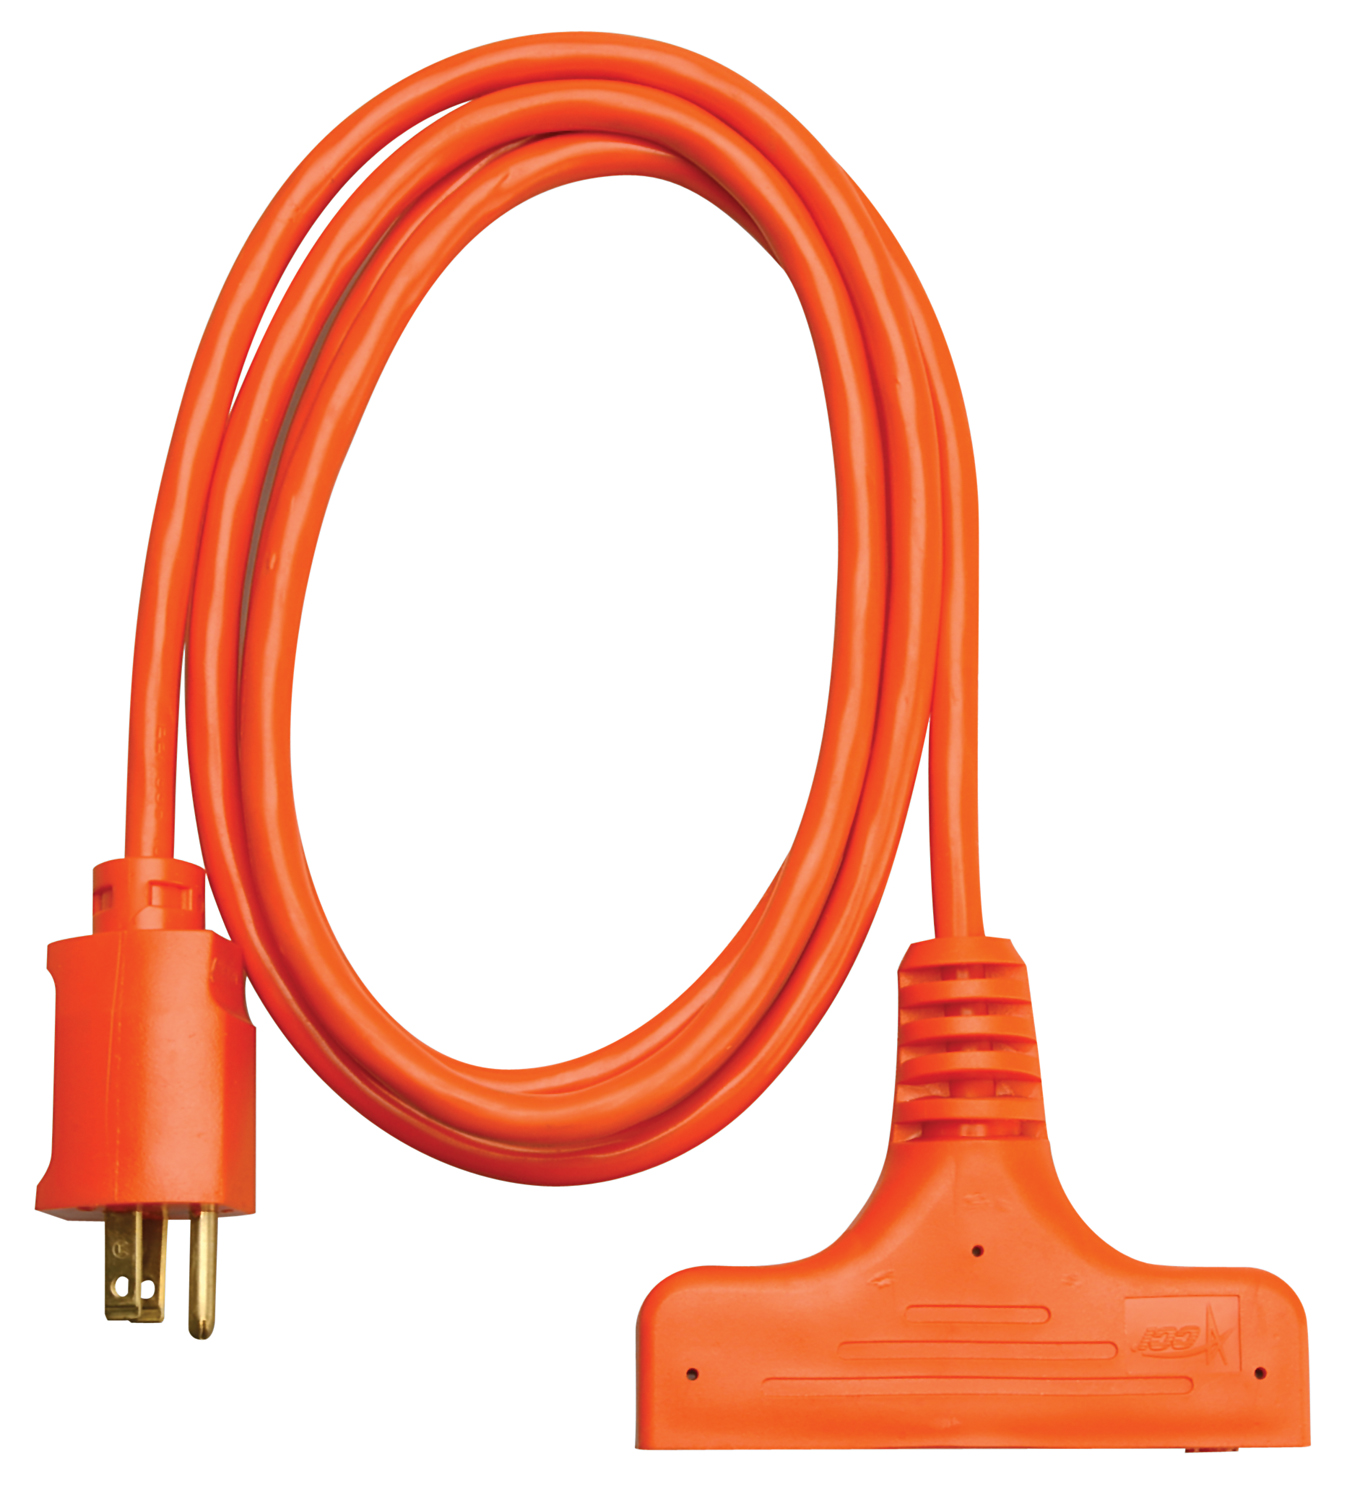 Coleman Cable 3 Way Power Block Tri-Source Multi-Outlets Extension Cord